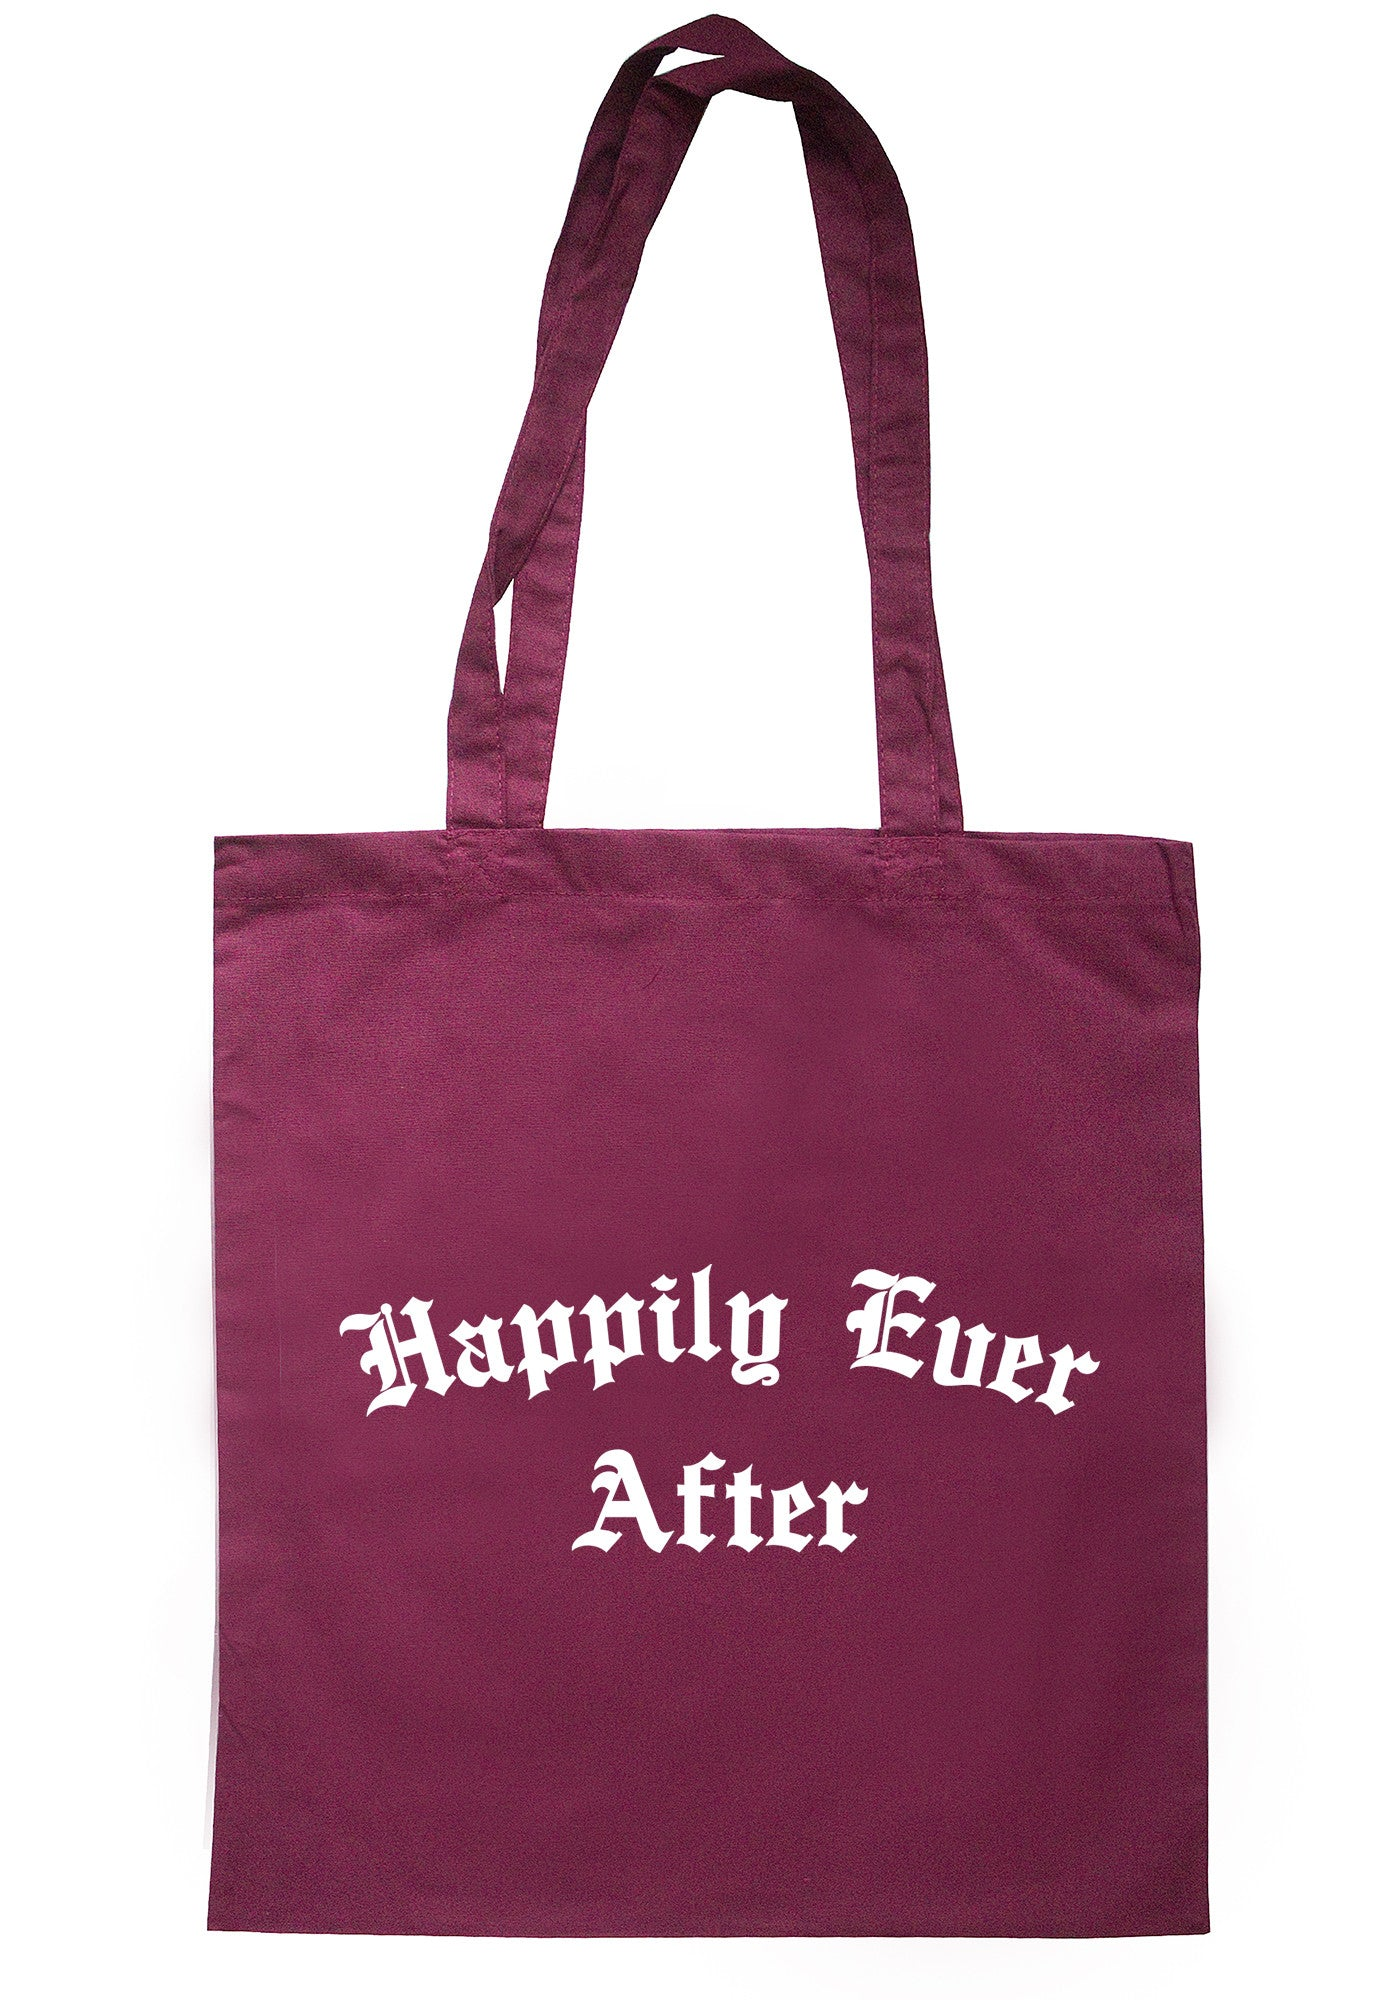 Happily Ever After Tote Bag TB0575 - Illustrated Identity Ltd.